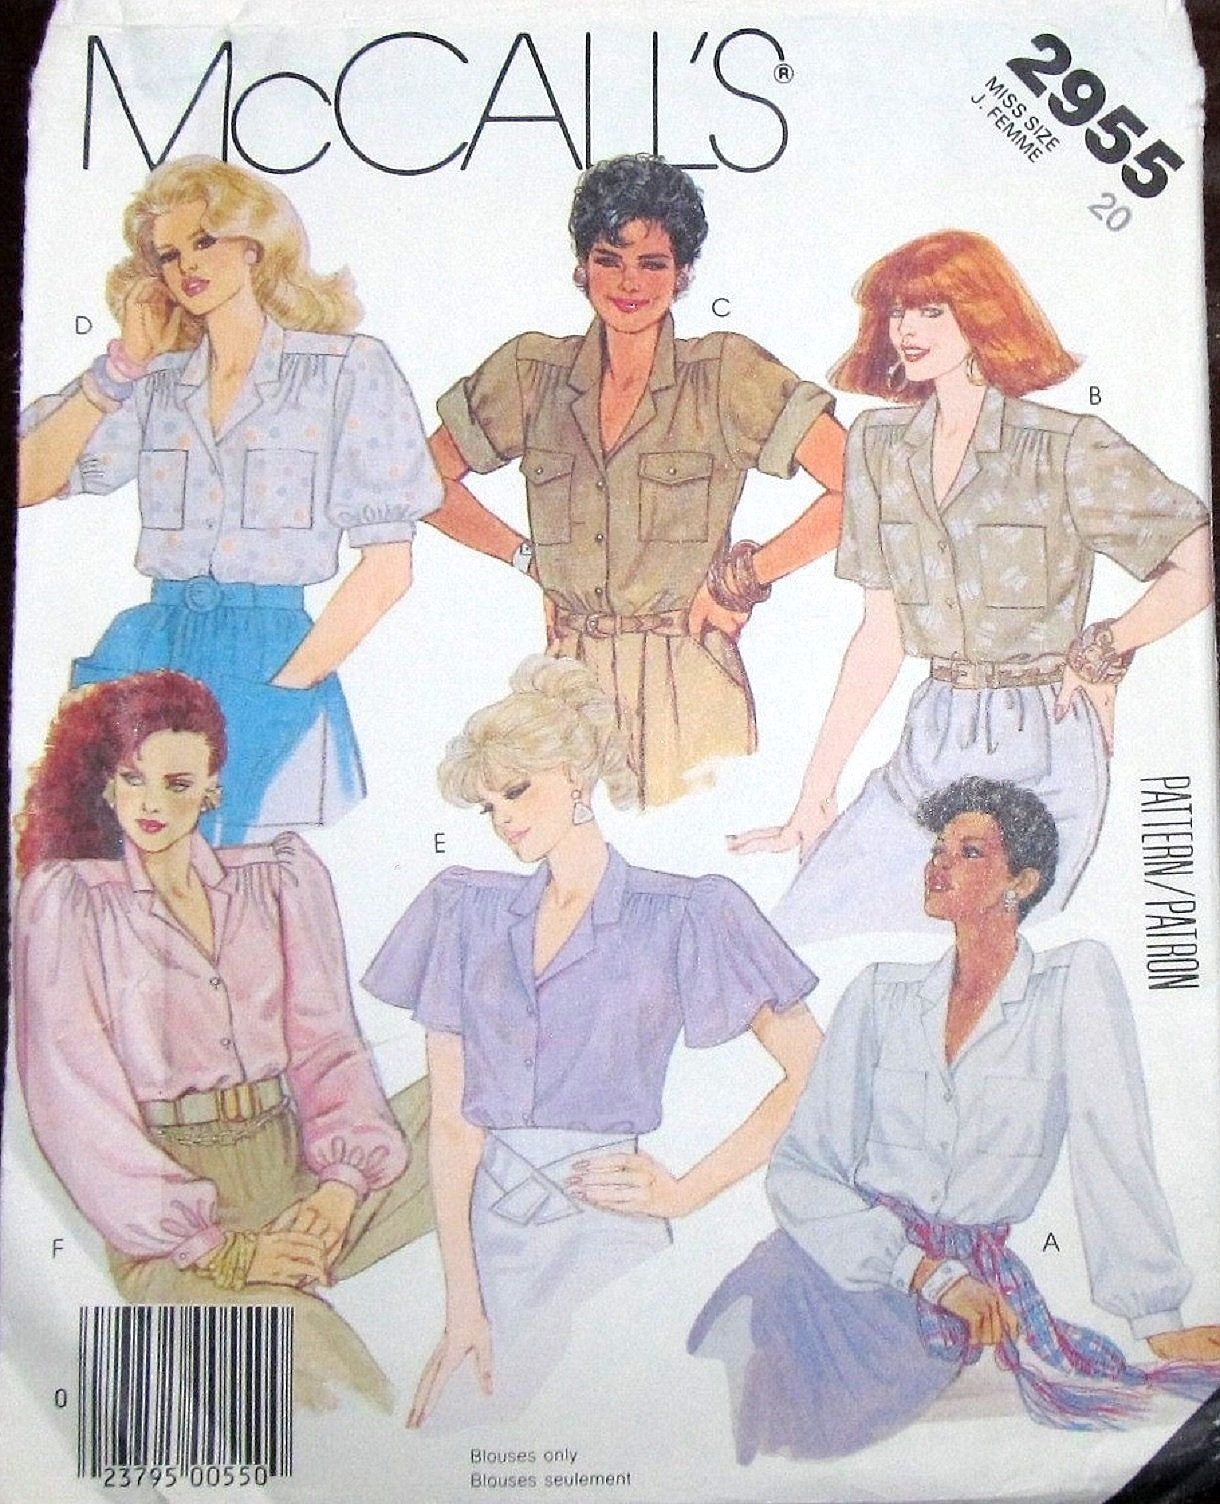 Easy vintage 1980s sewing pattern mccalls 2955 button down blouse easy vintage 1980s sewing pattern mccalls 2955 button down blouse tuck in camp shirt womens misses jeuxipadfo Images